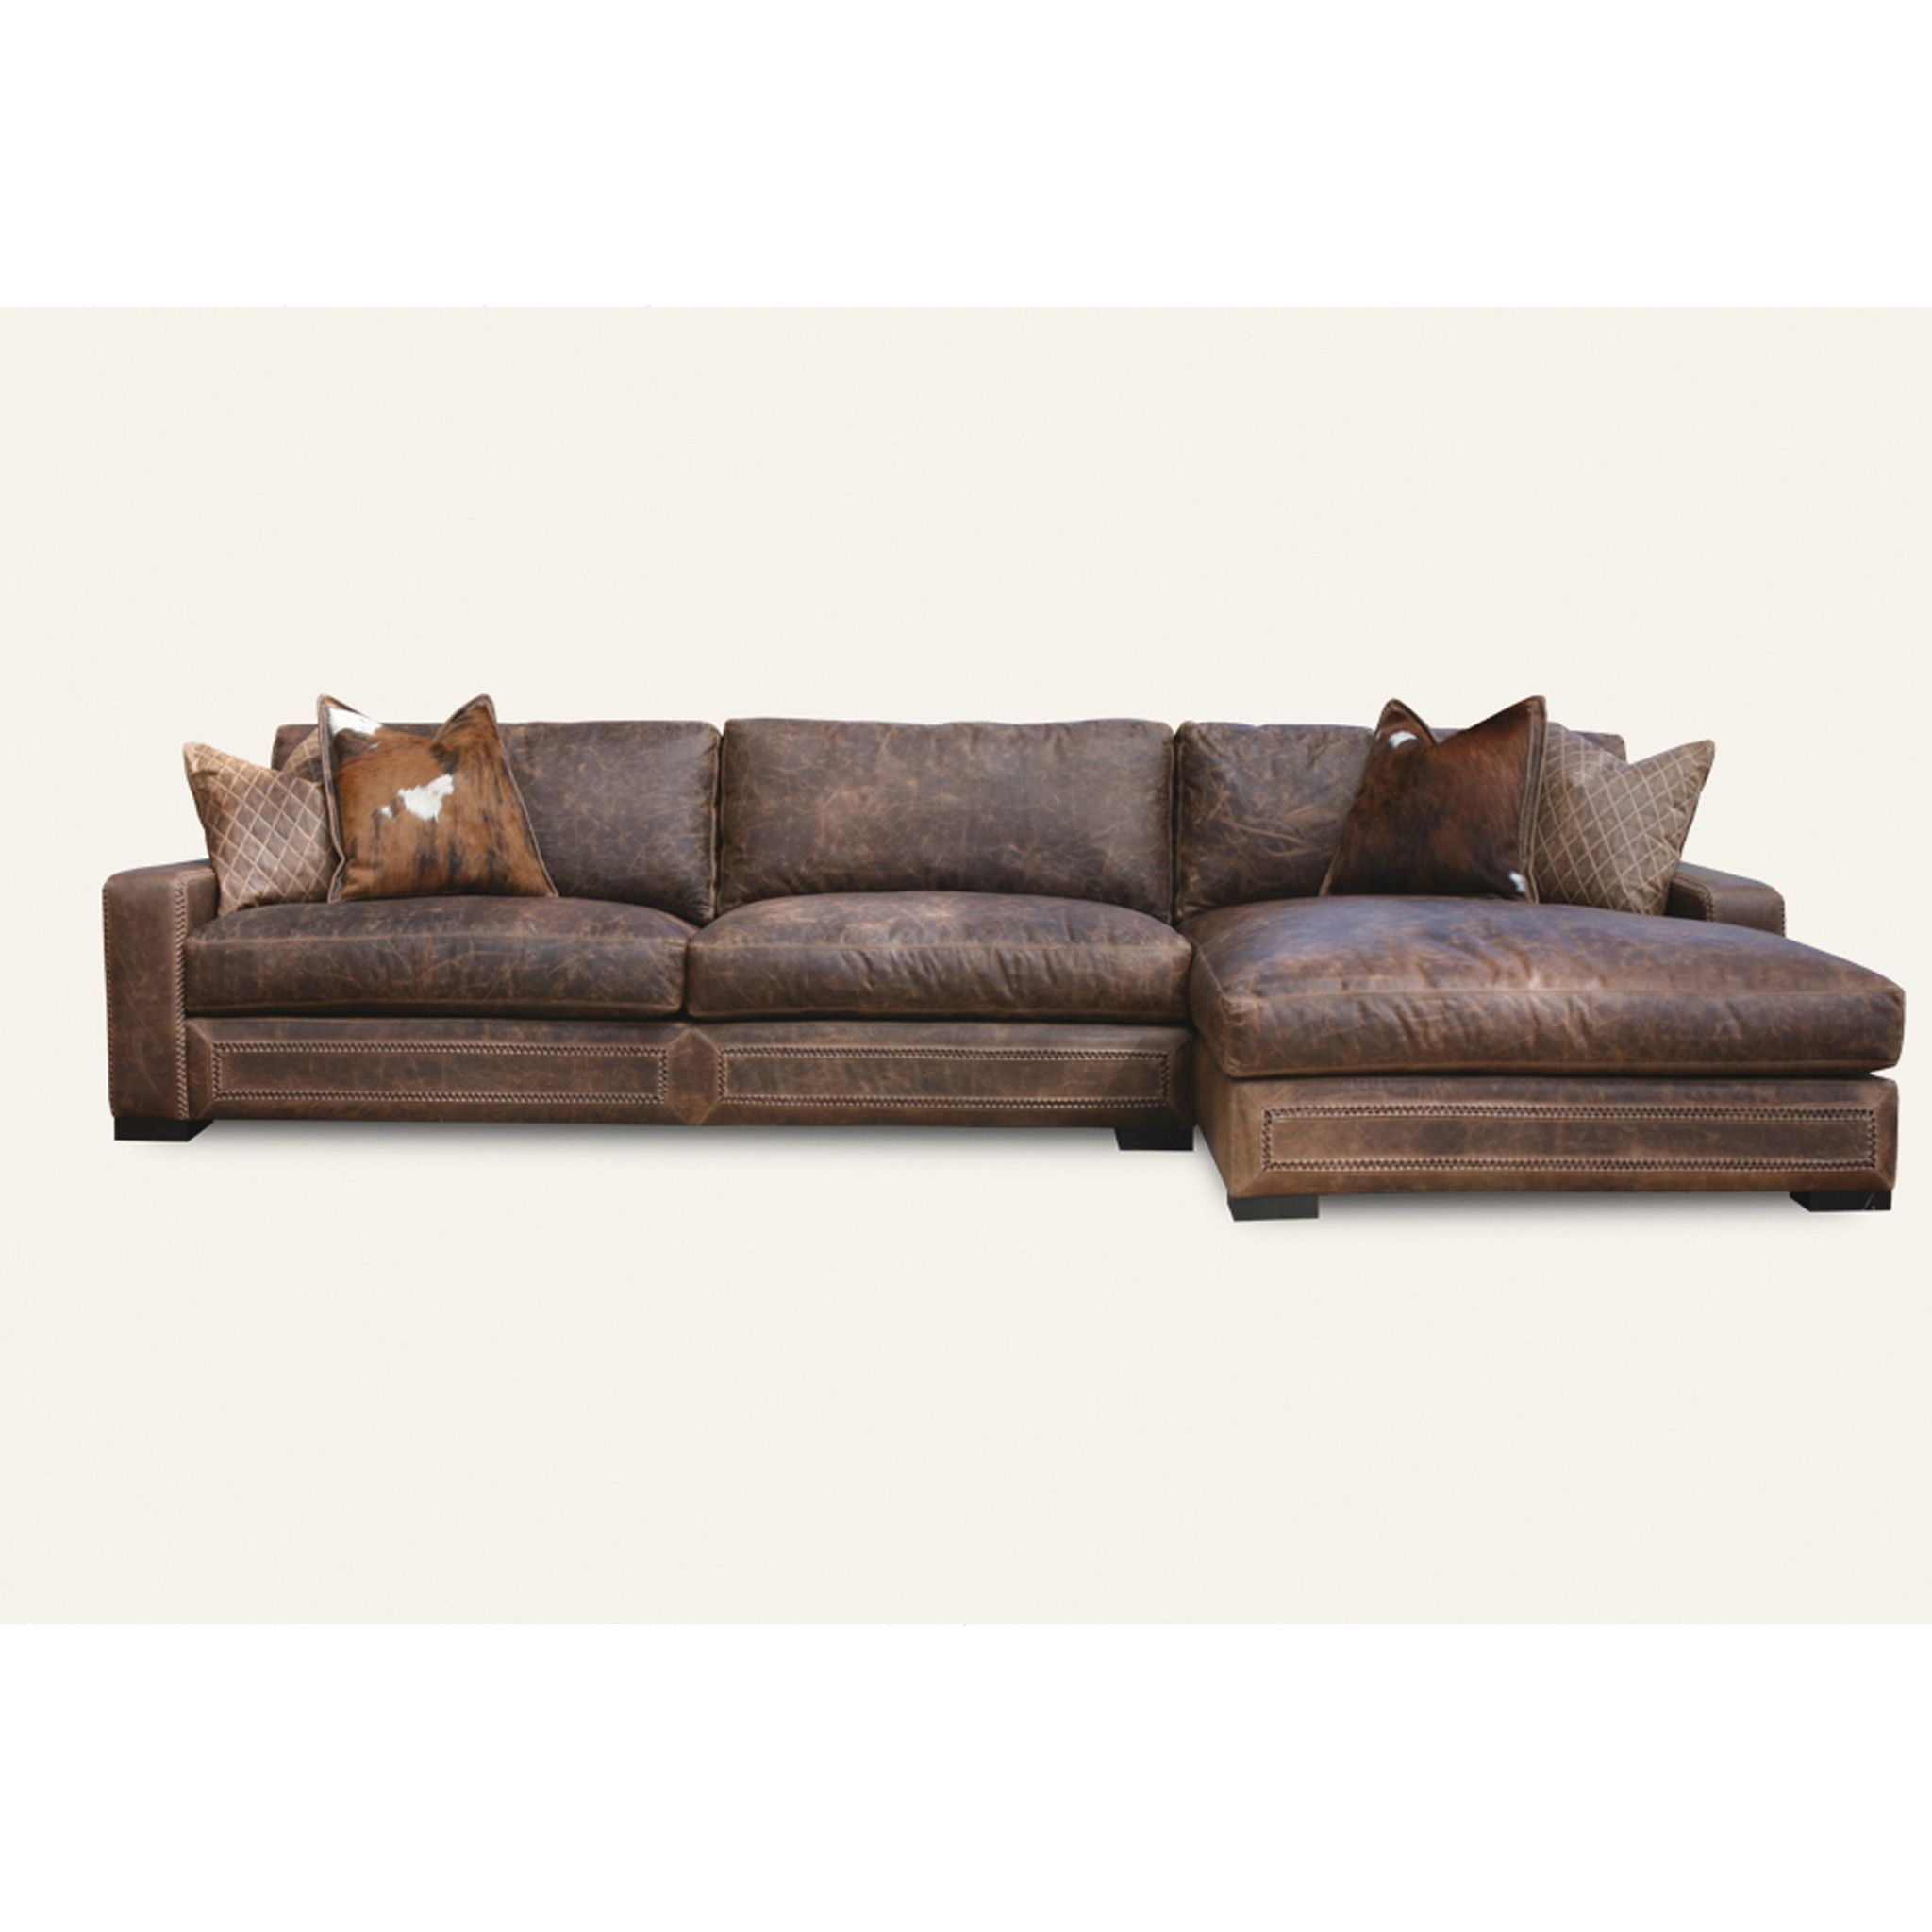 Downtown Cowboy Sectional Leather Couches For Sale Leather Sectional Sofas Leather Sleeper Sofa